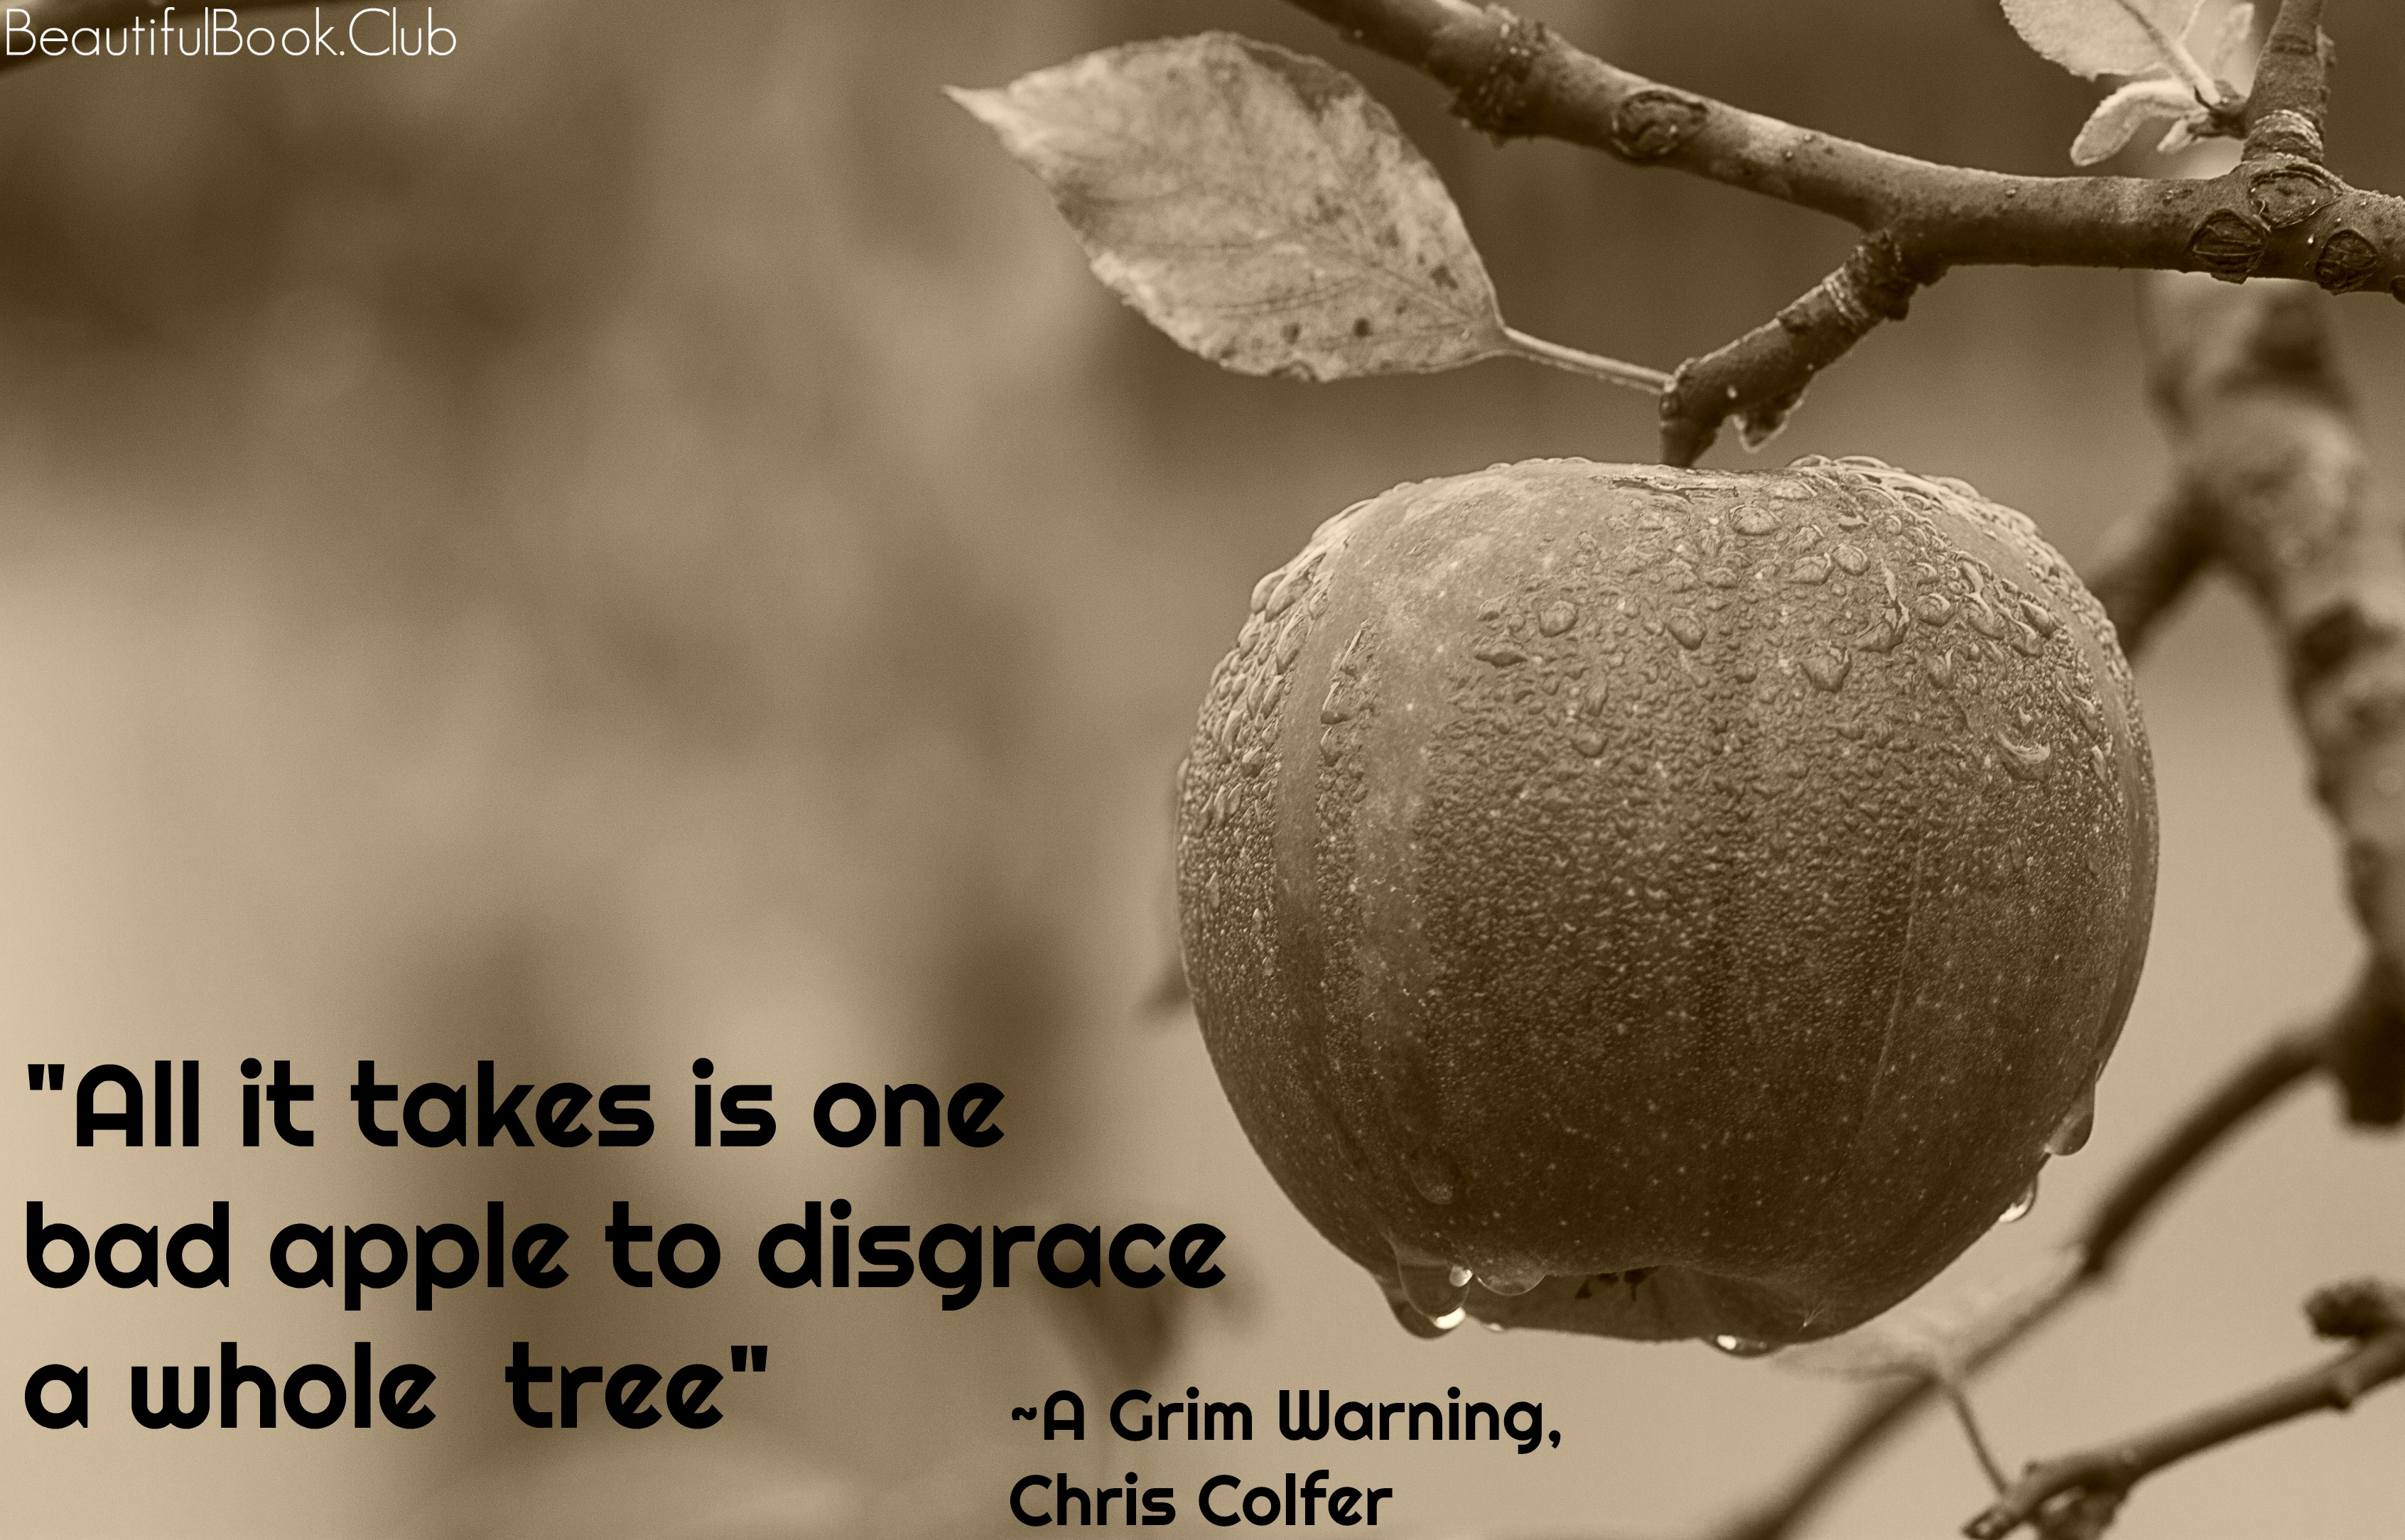 All it takes is one bad apple to disgrace a whole tree _A Grim Warning , Chris Colfer